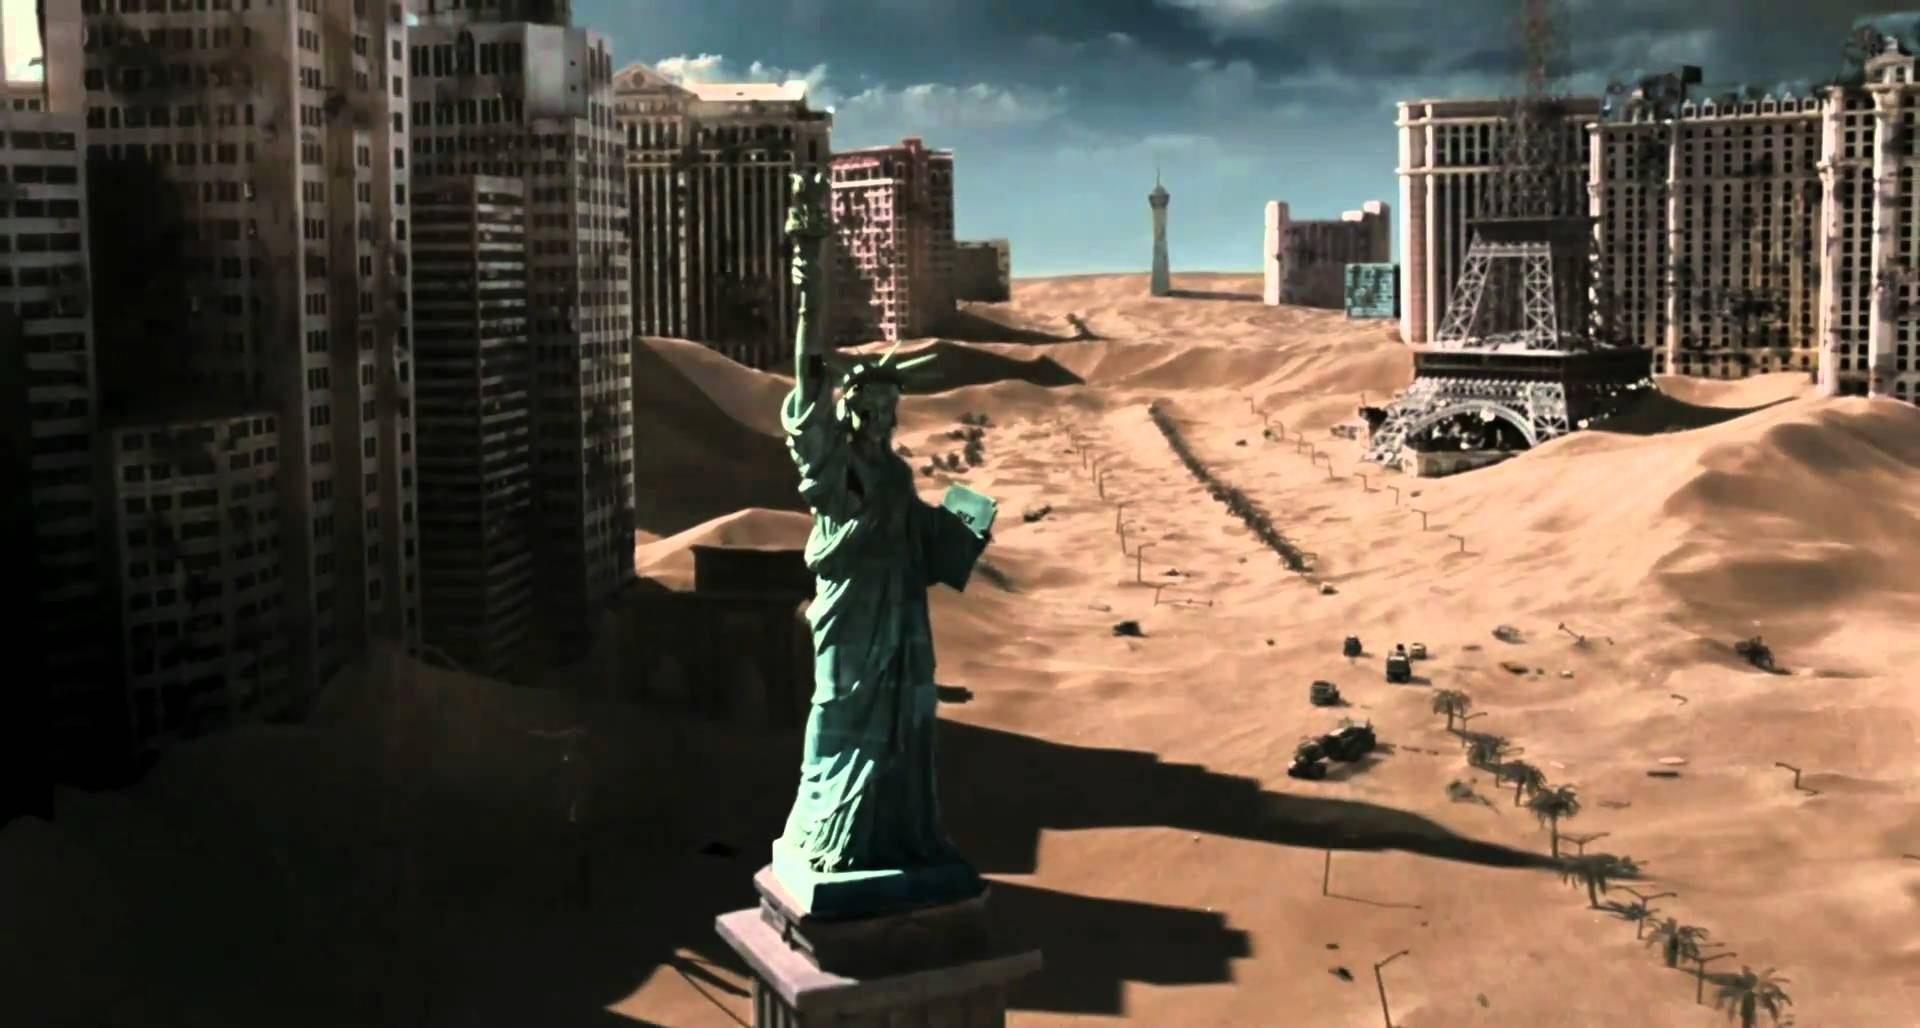 A destroyed Las Vegas in Resident Evil: Extinction (2007)